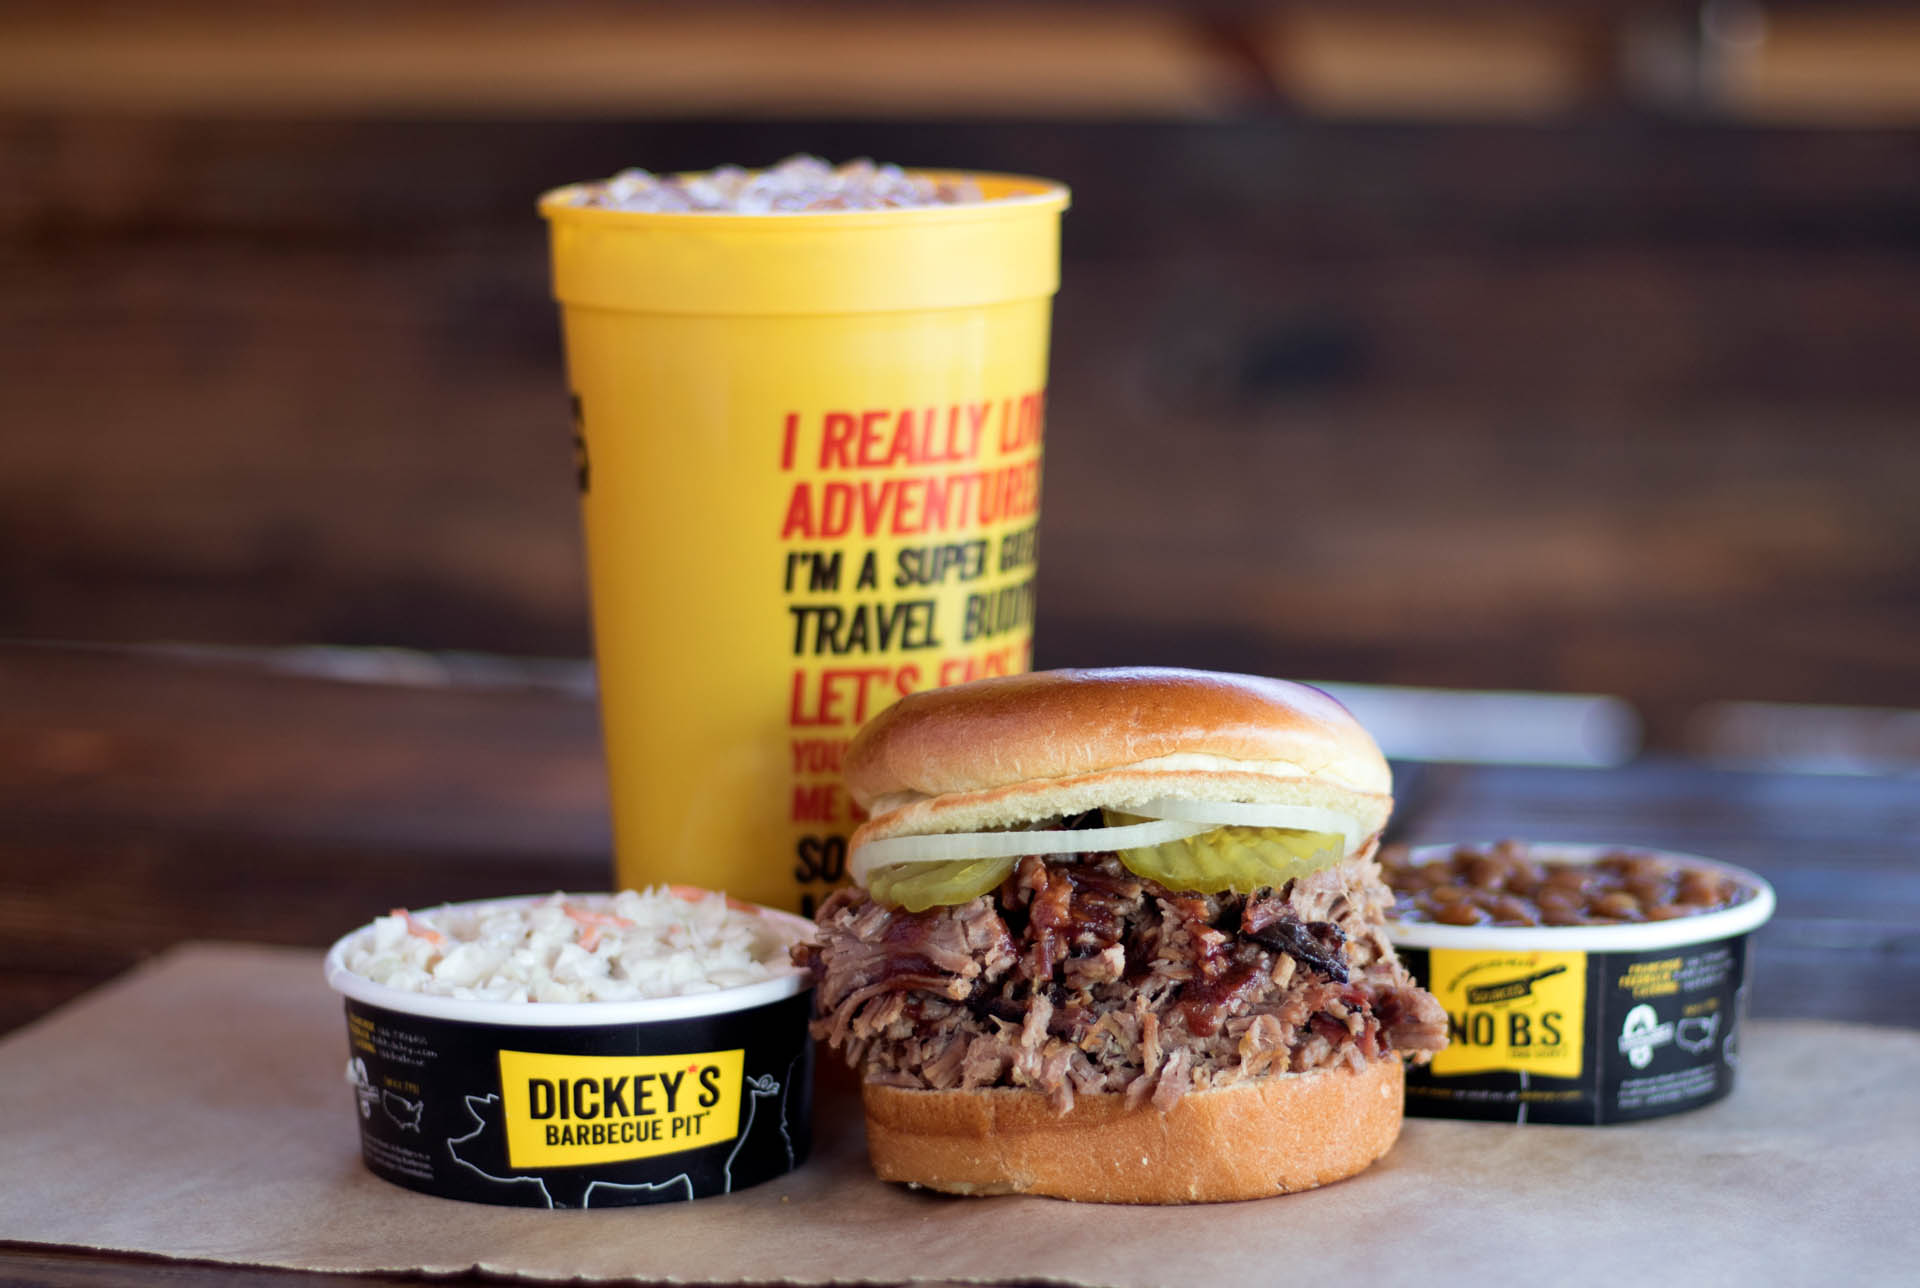 Local Entrepreneur Brings Dickey's Texas-style Barbecue to Gallup